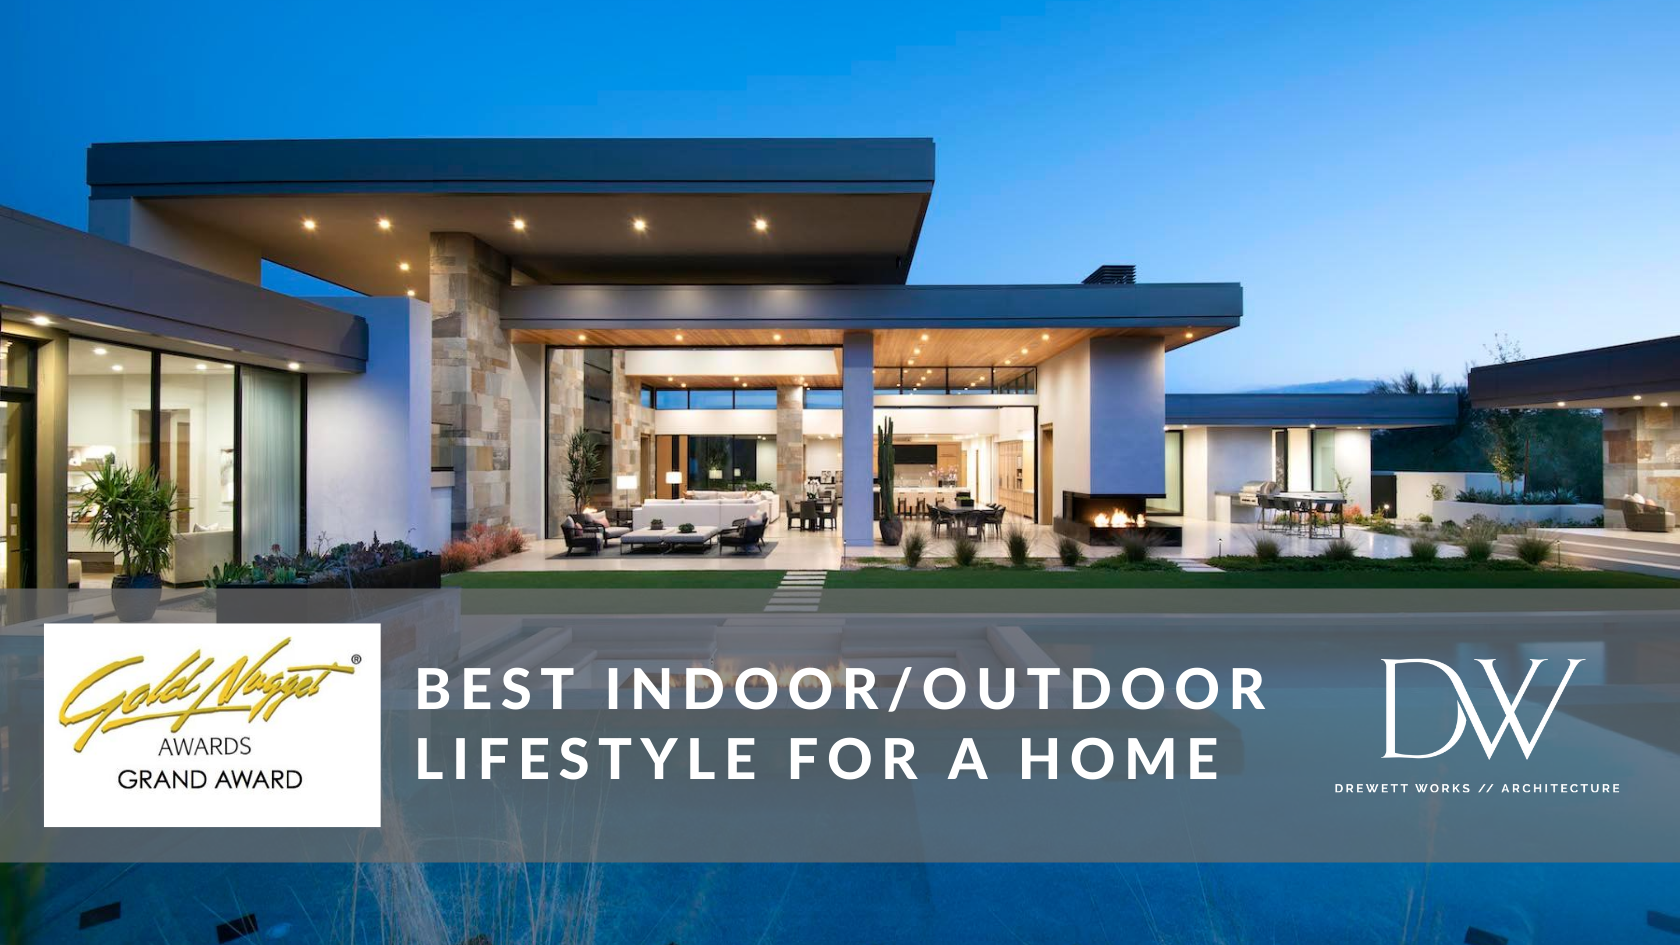 Grand Award Winner for Best Indoor Outdoor Lifestyle for a Home